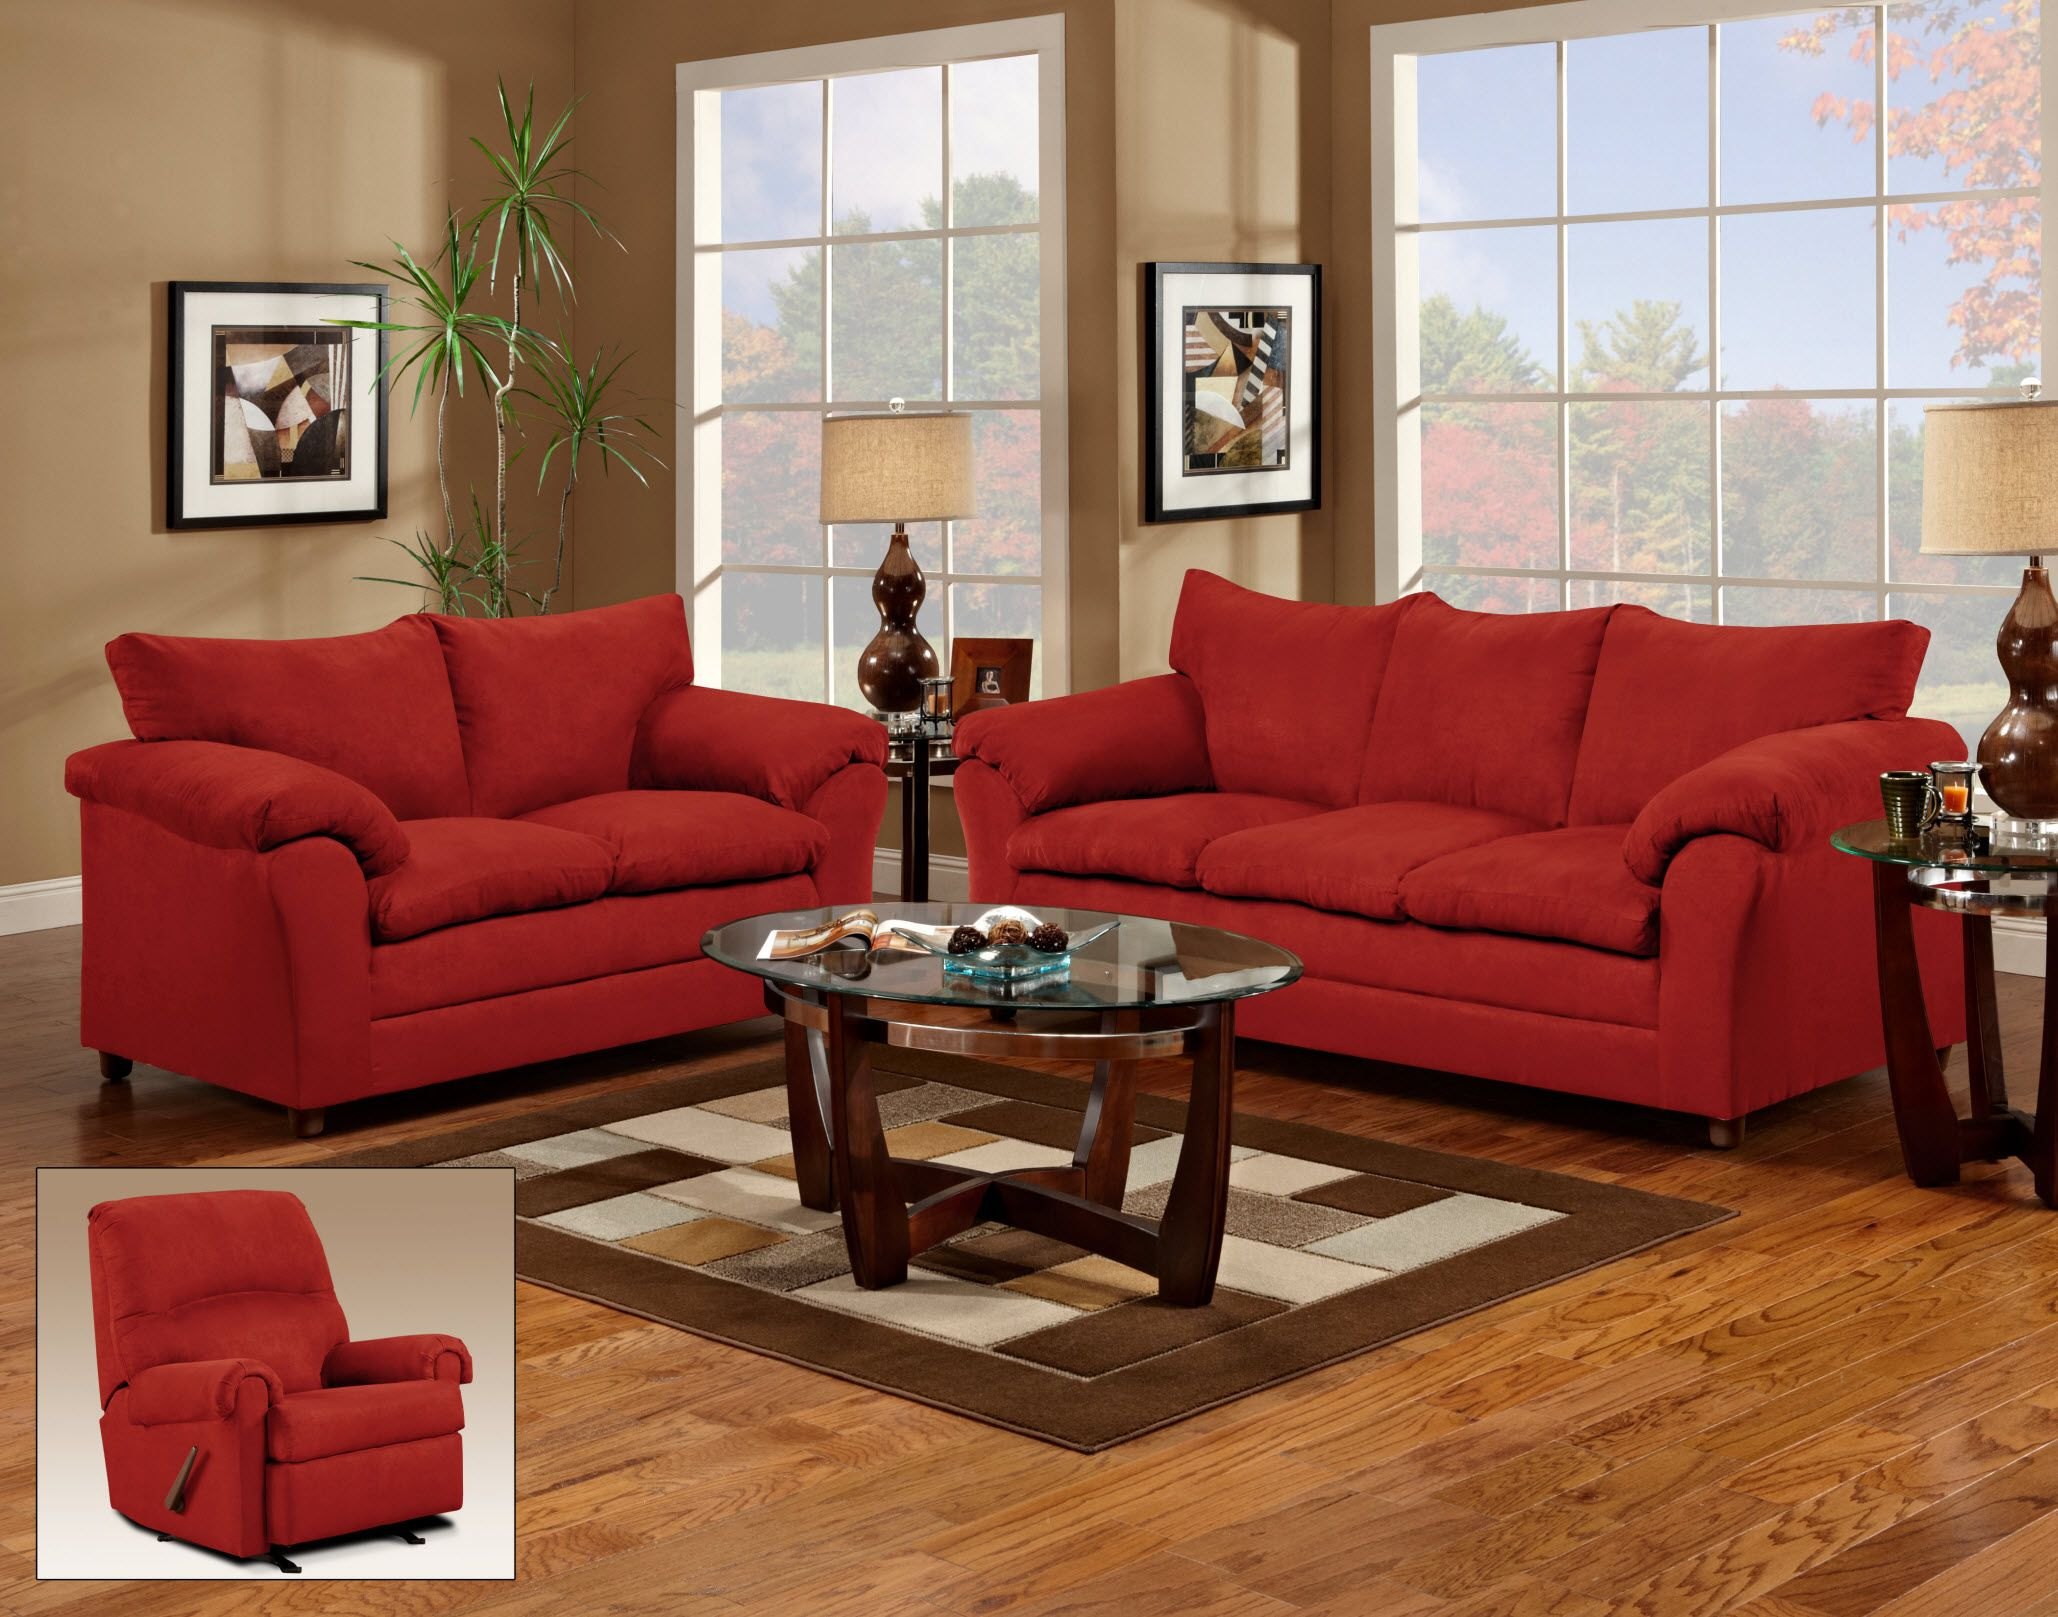 Living Room With Red Sofa Red Couch And Loveseat Living Room For The Home Pinterest